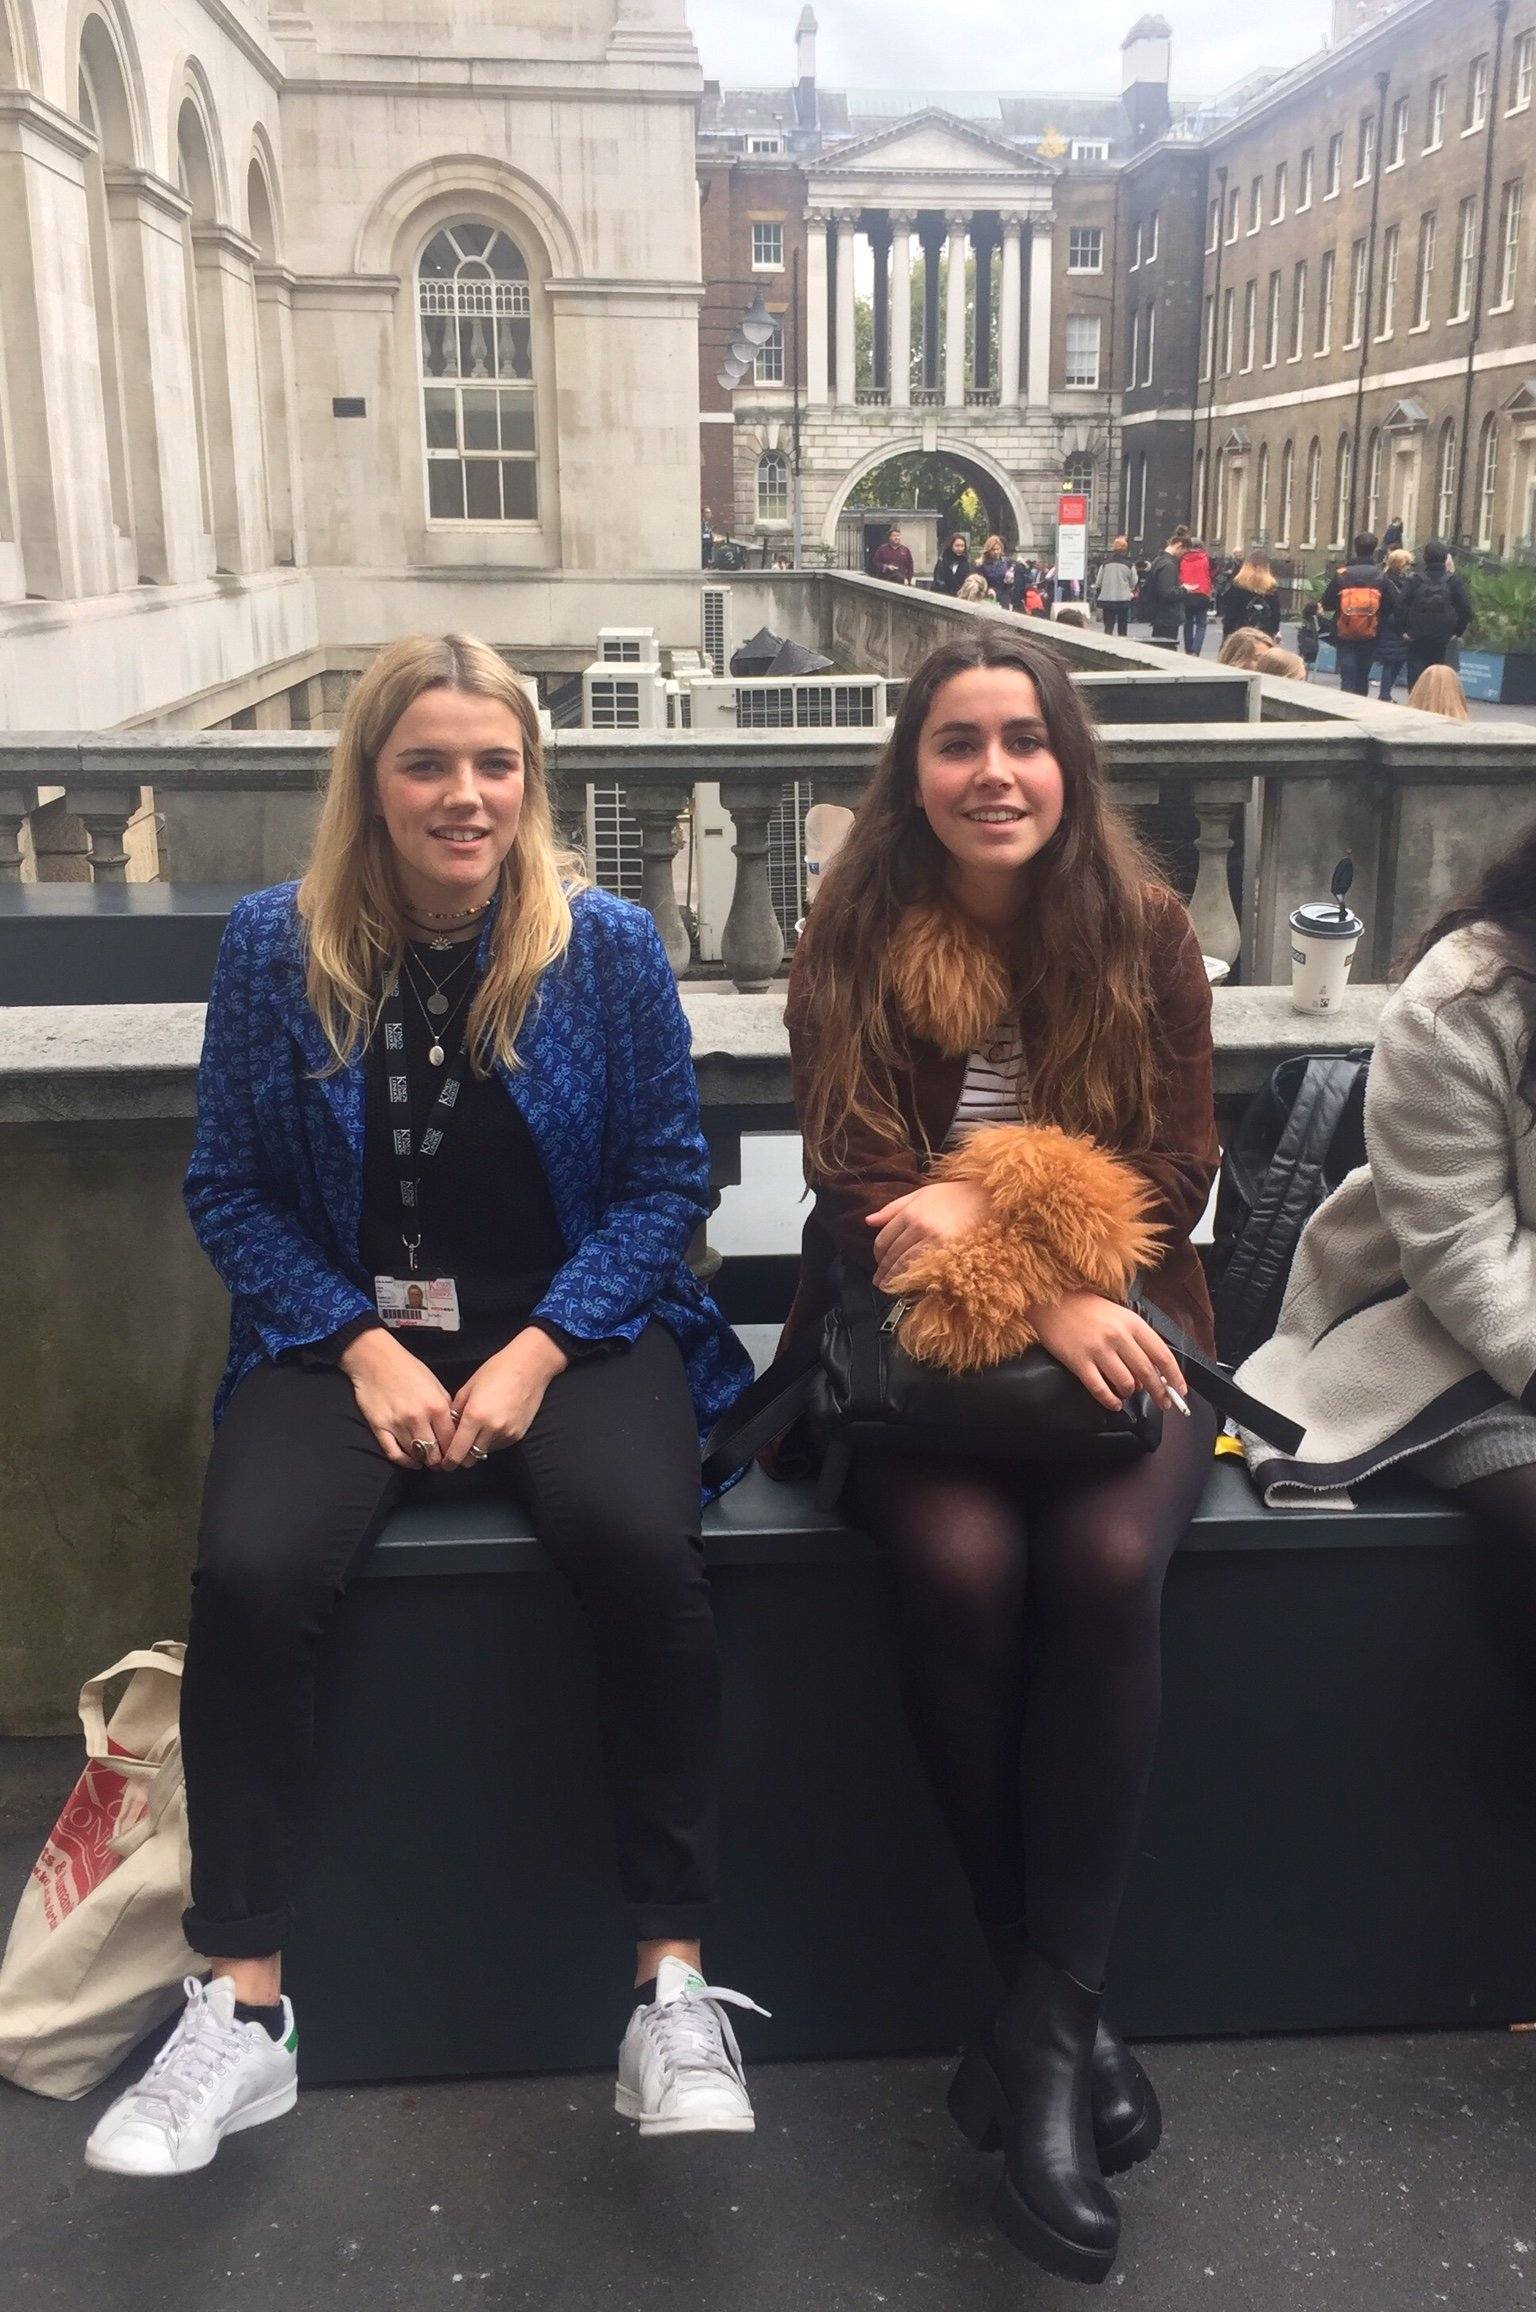 (Left) Olivia,1st year, French, (right) Joana, 1st year, French and English